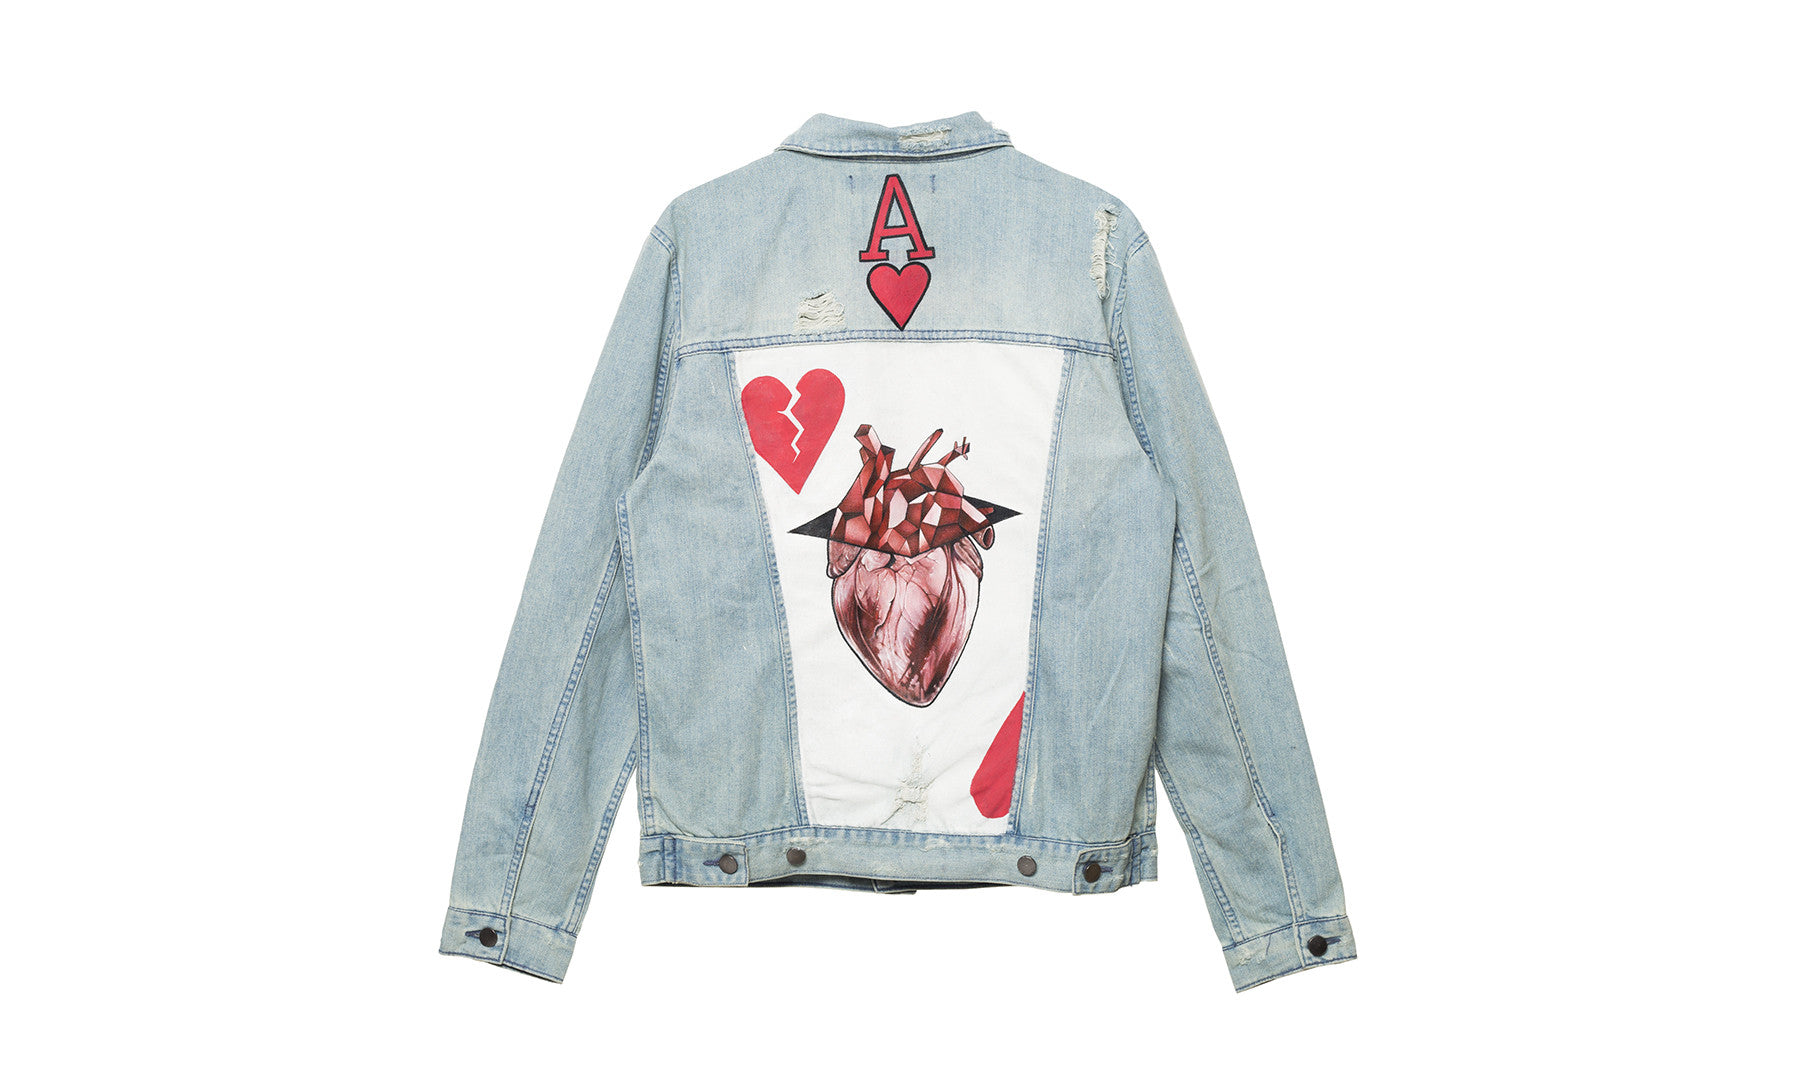 elwood clothing painted denim trucker jacket